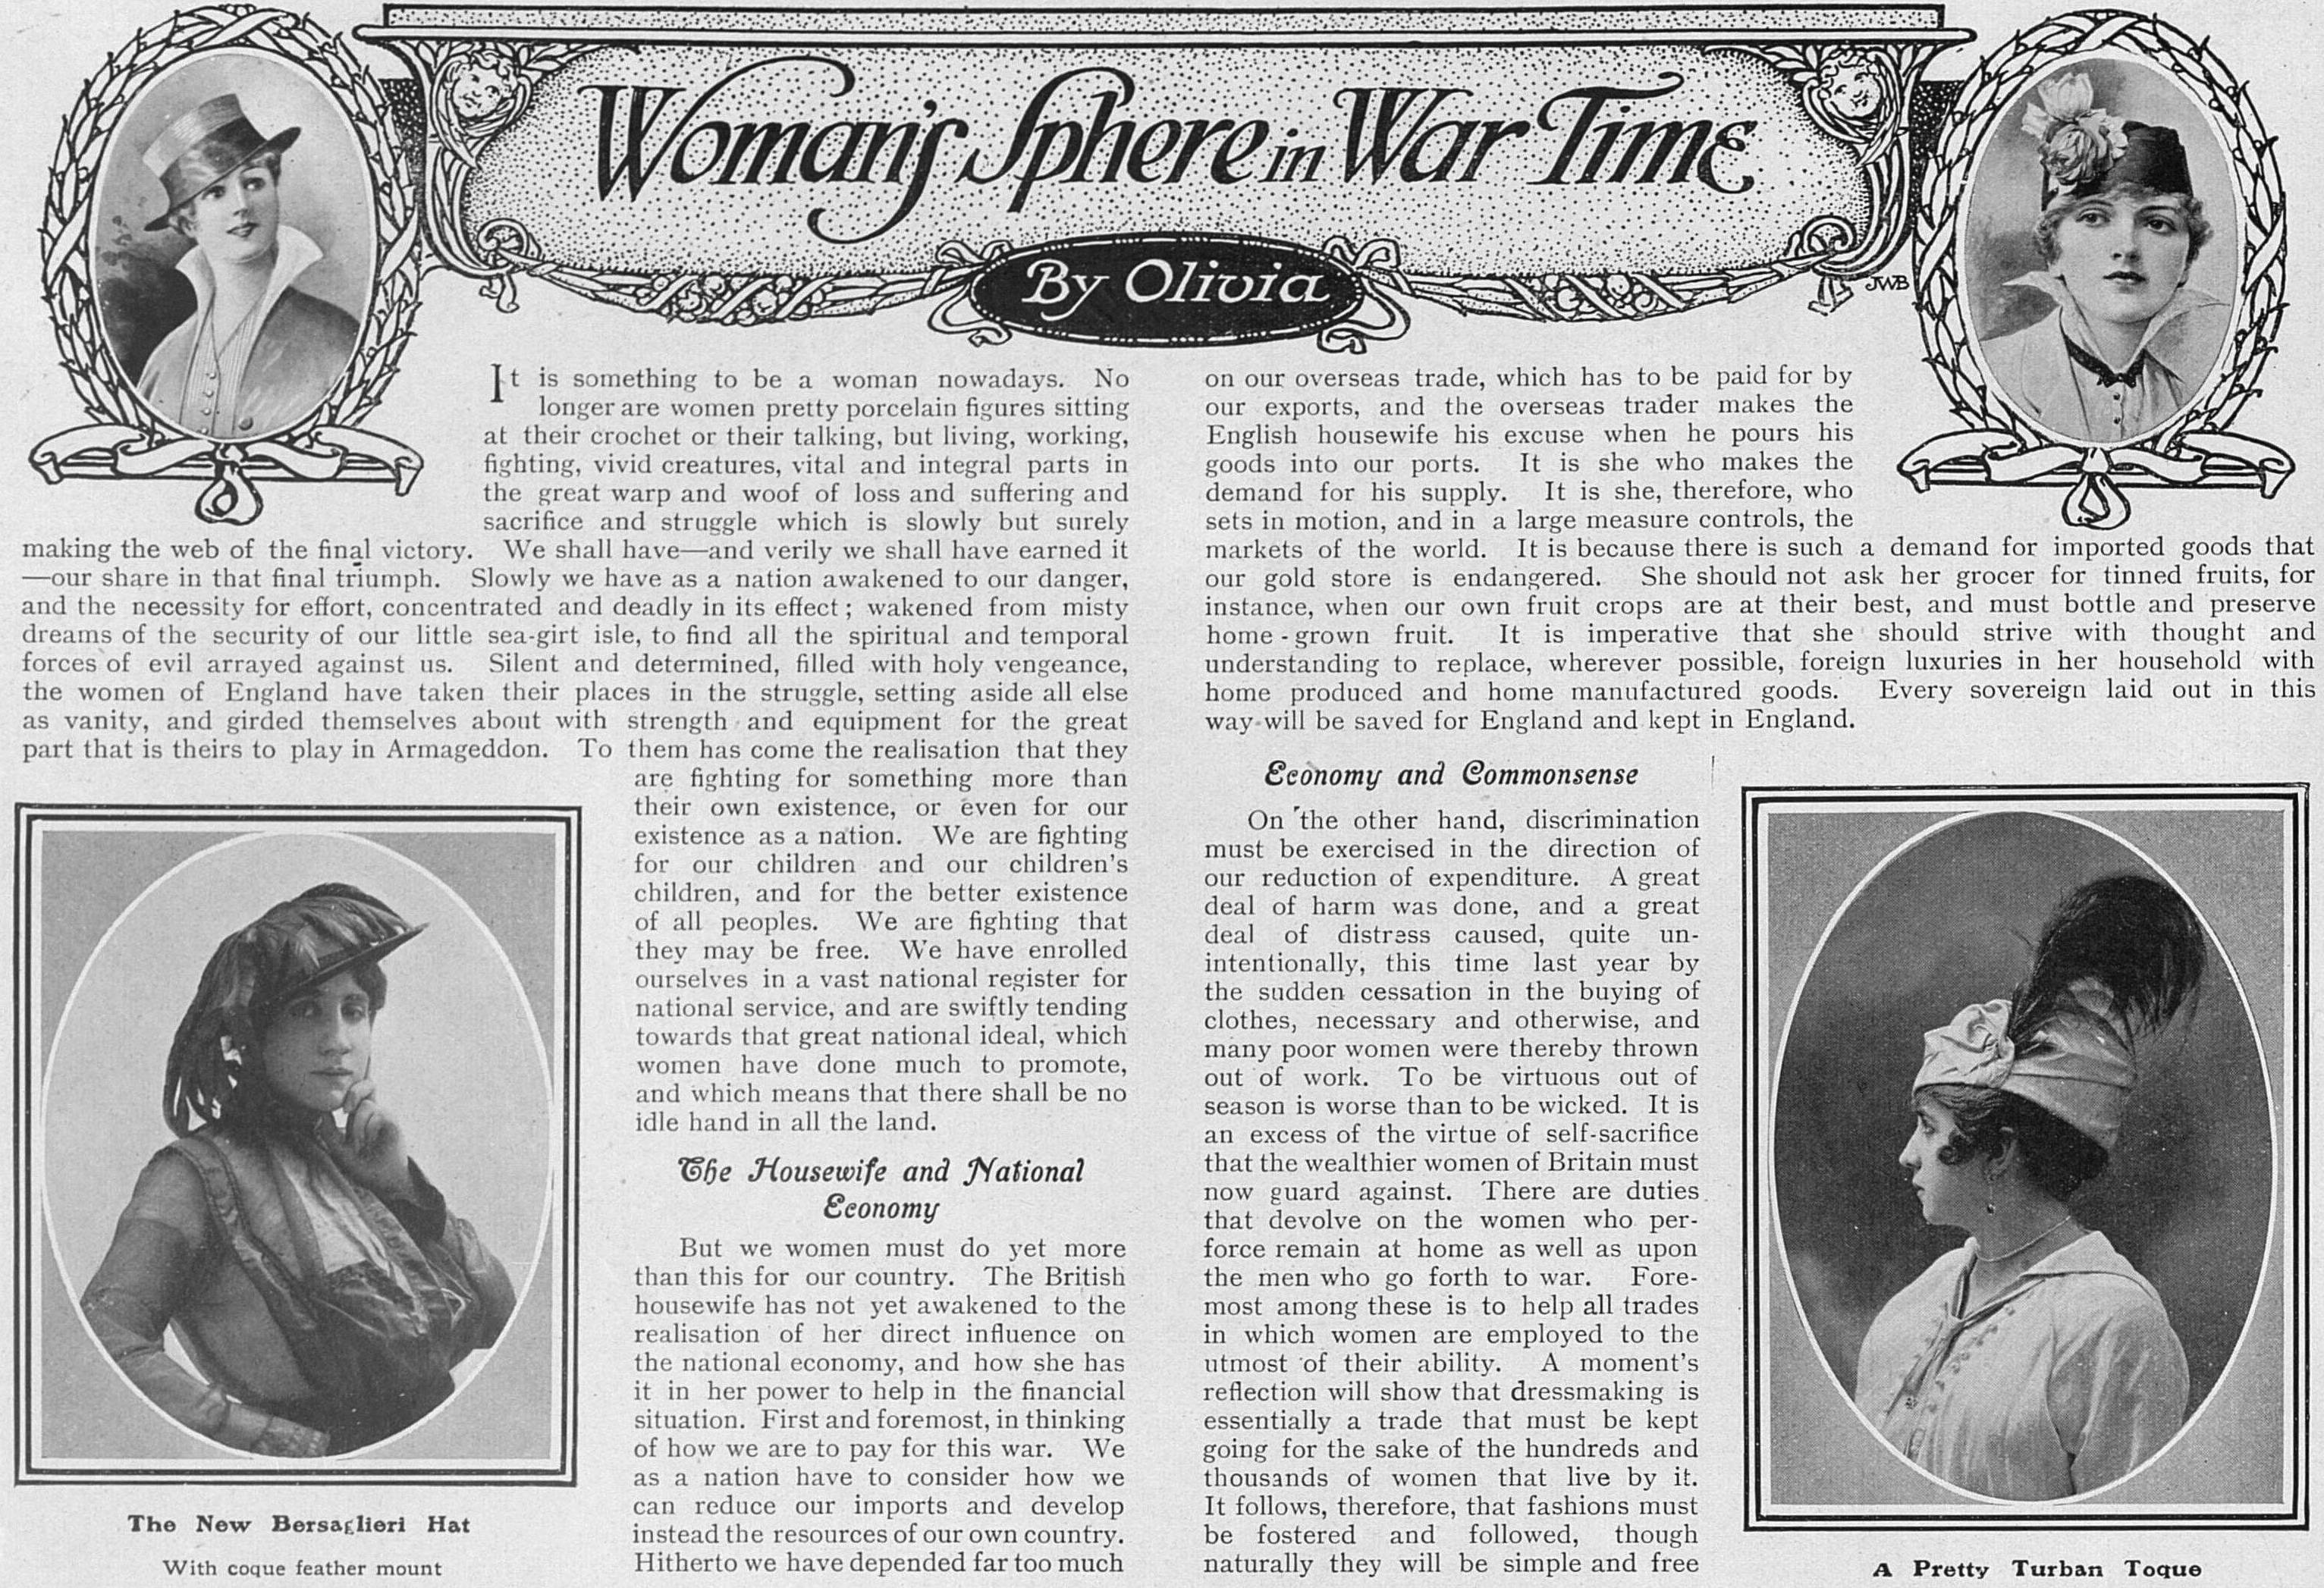 WomansSphereInWarTime_18Sep1915